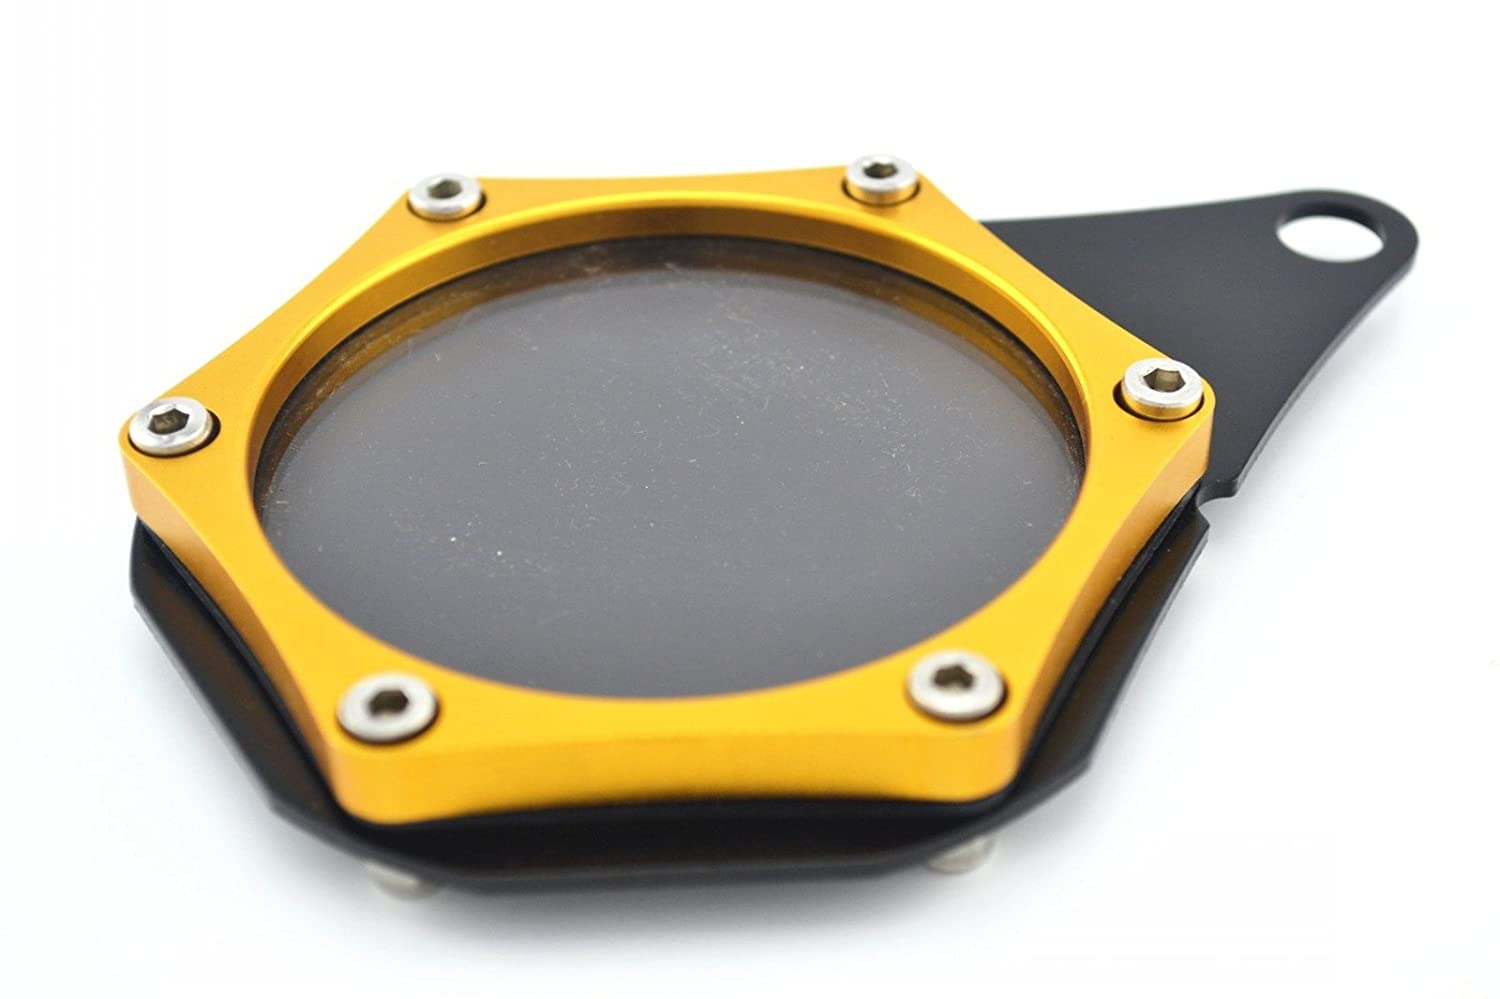 Orange Universal Motorbike accessory CNC Aluminum Alloy waterproof seal Tax Disc License Holder Fit For Suzuki HAYABUSA//GSXR1300 1999-2007